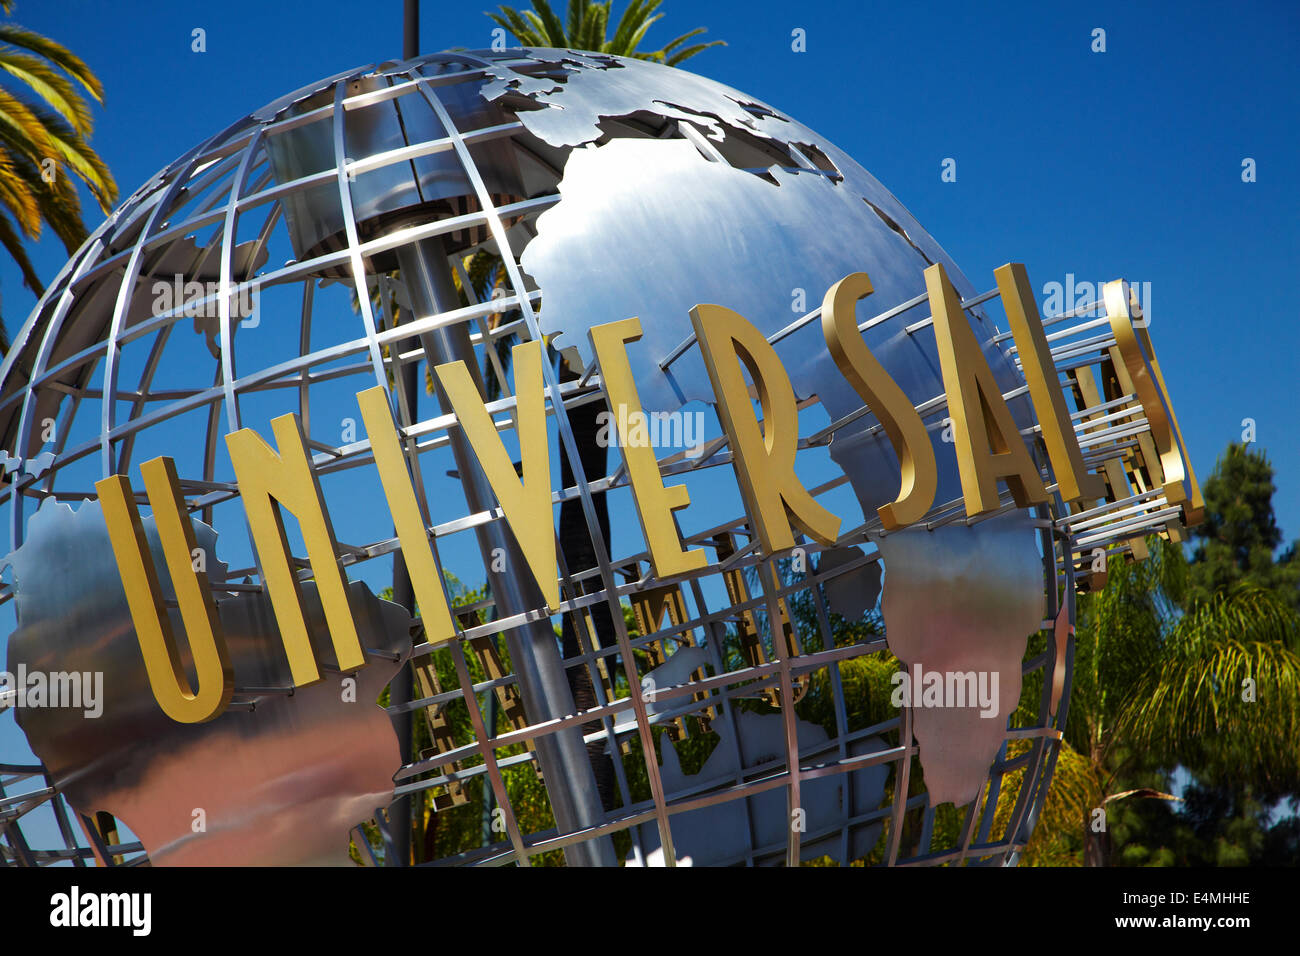 Universal Studios globe sign, Hollywood, Los Angeles, California, USA - Stock Image